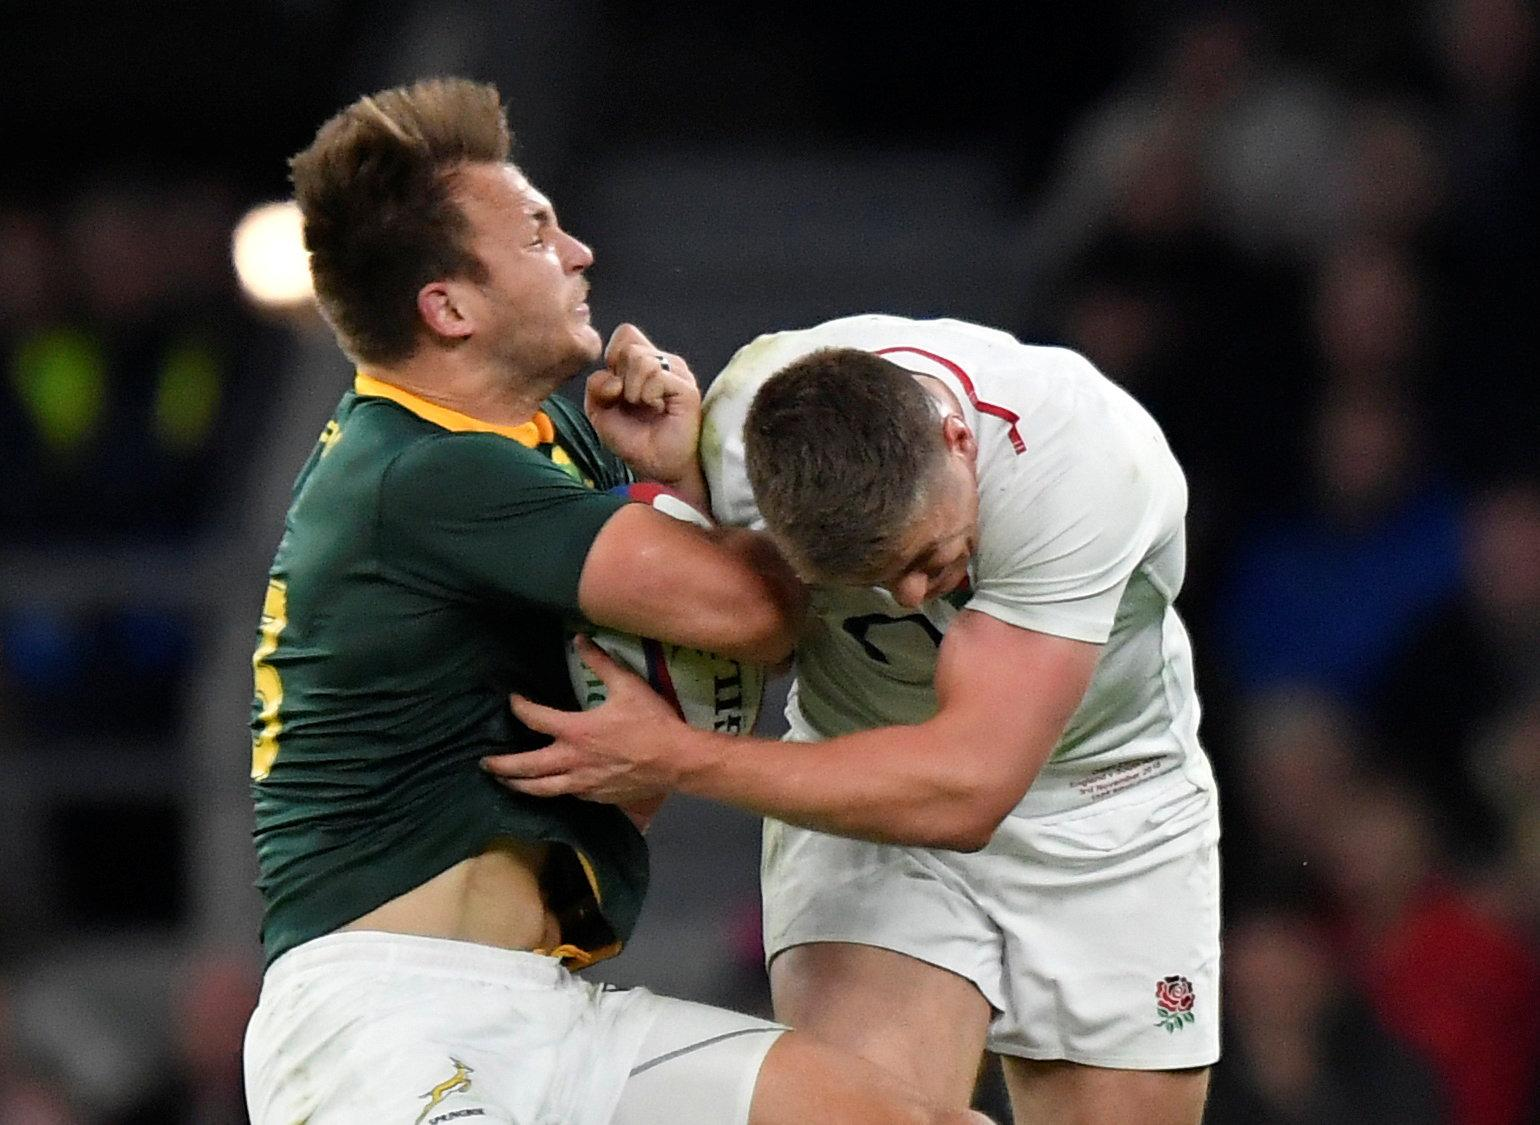 Match officials decided Farrell did attempt to wrap his arm in the tackle on Esterhuizen